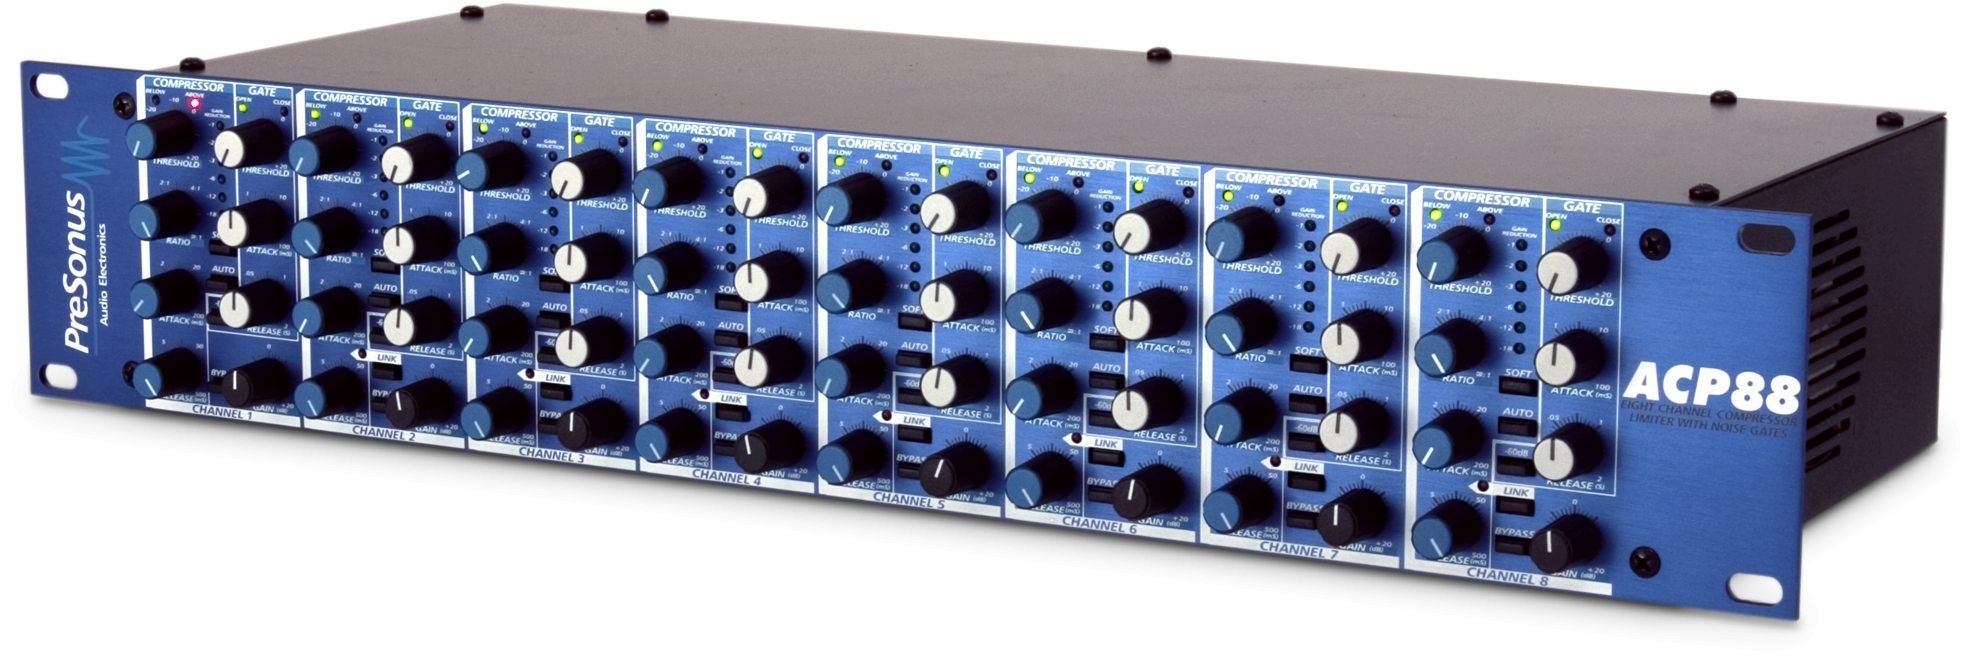 The PreSonus ACP88 is available at Hollywood Sound Systems.